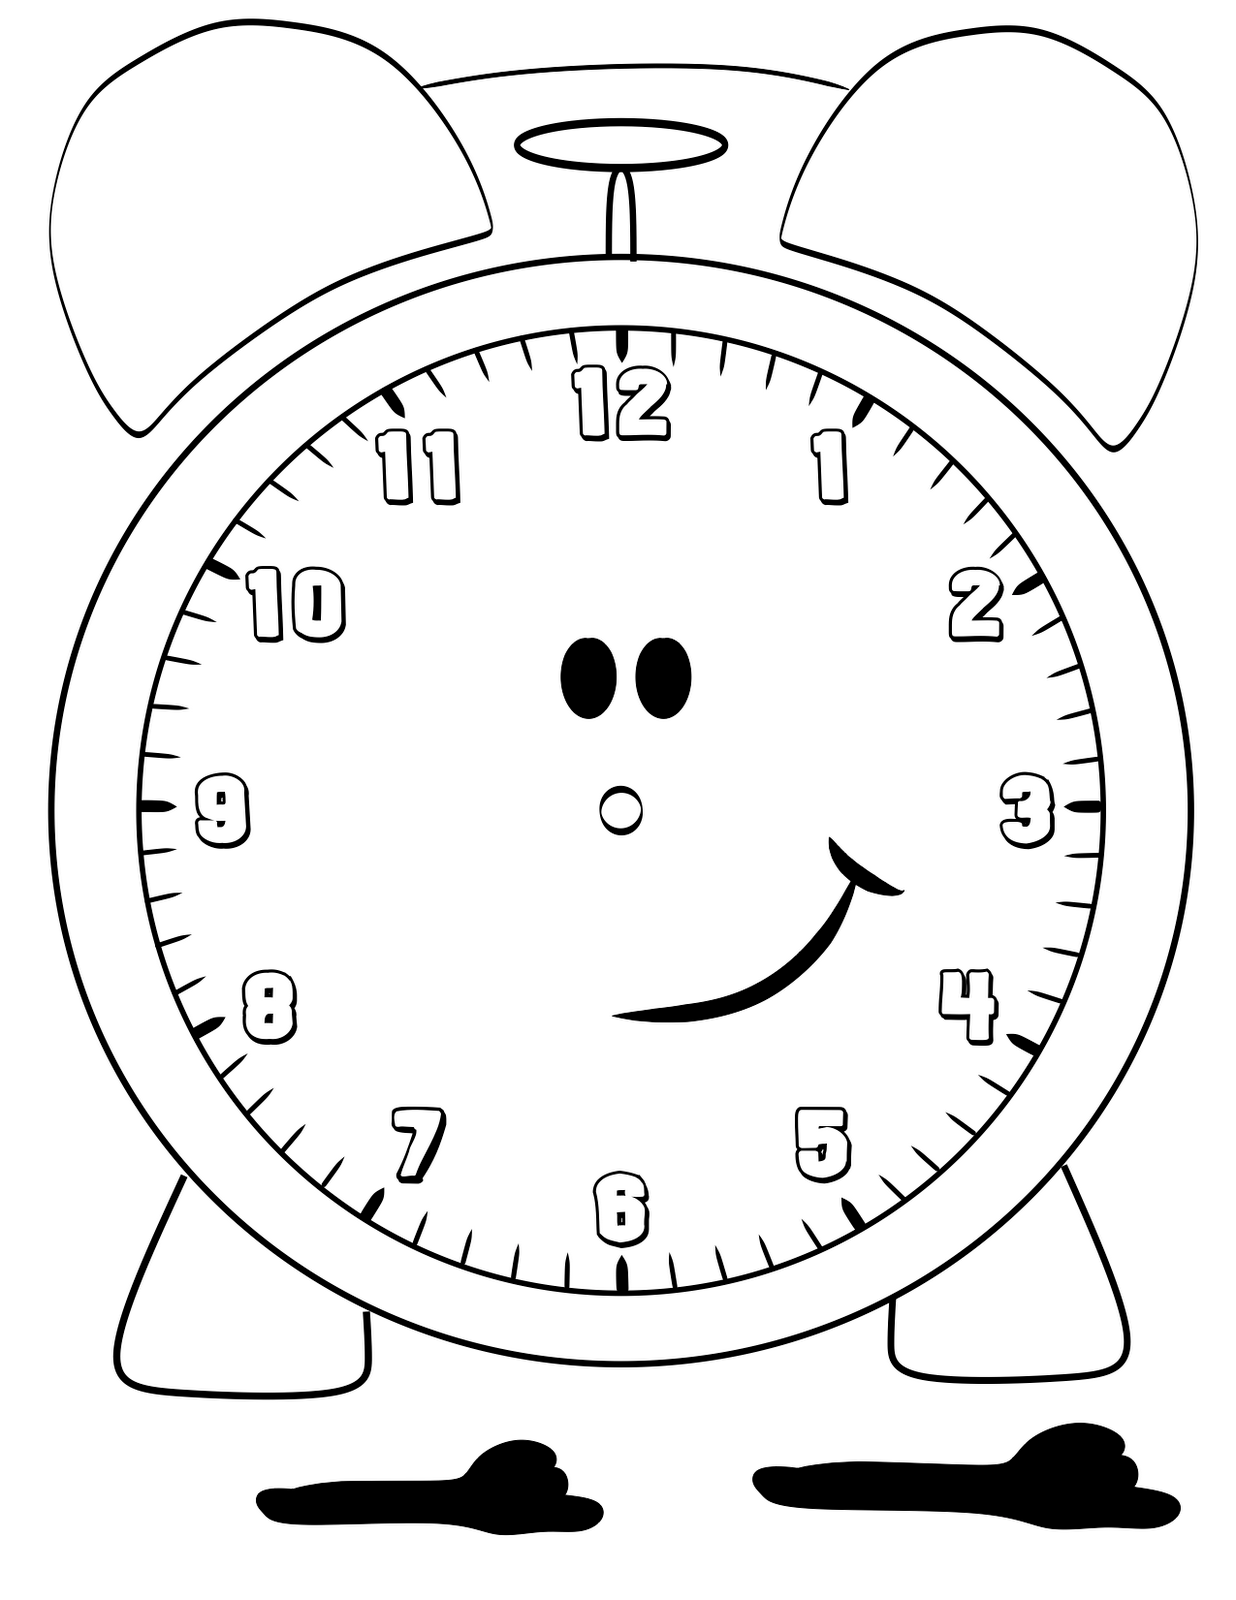 coloring pages blank kid kindergarten | blank clock faces for kids | relógio | Coloring pages for ...